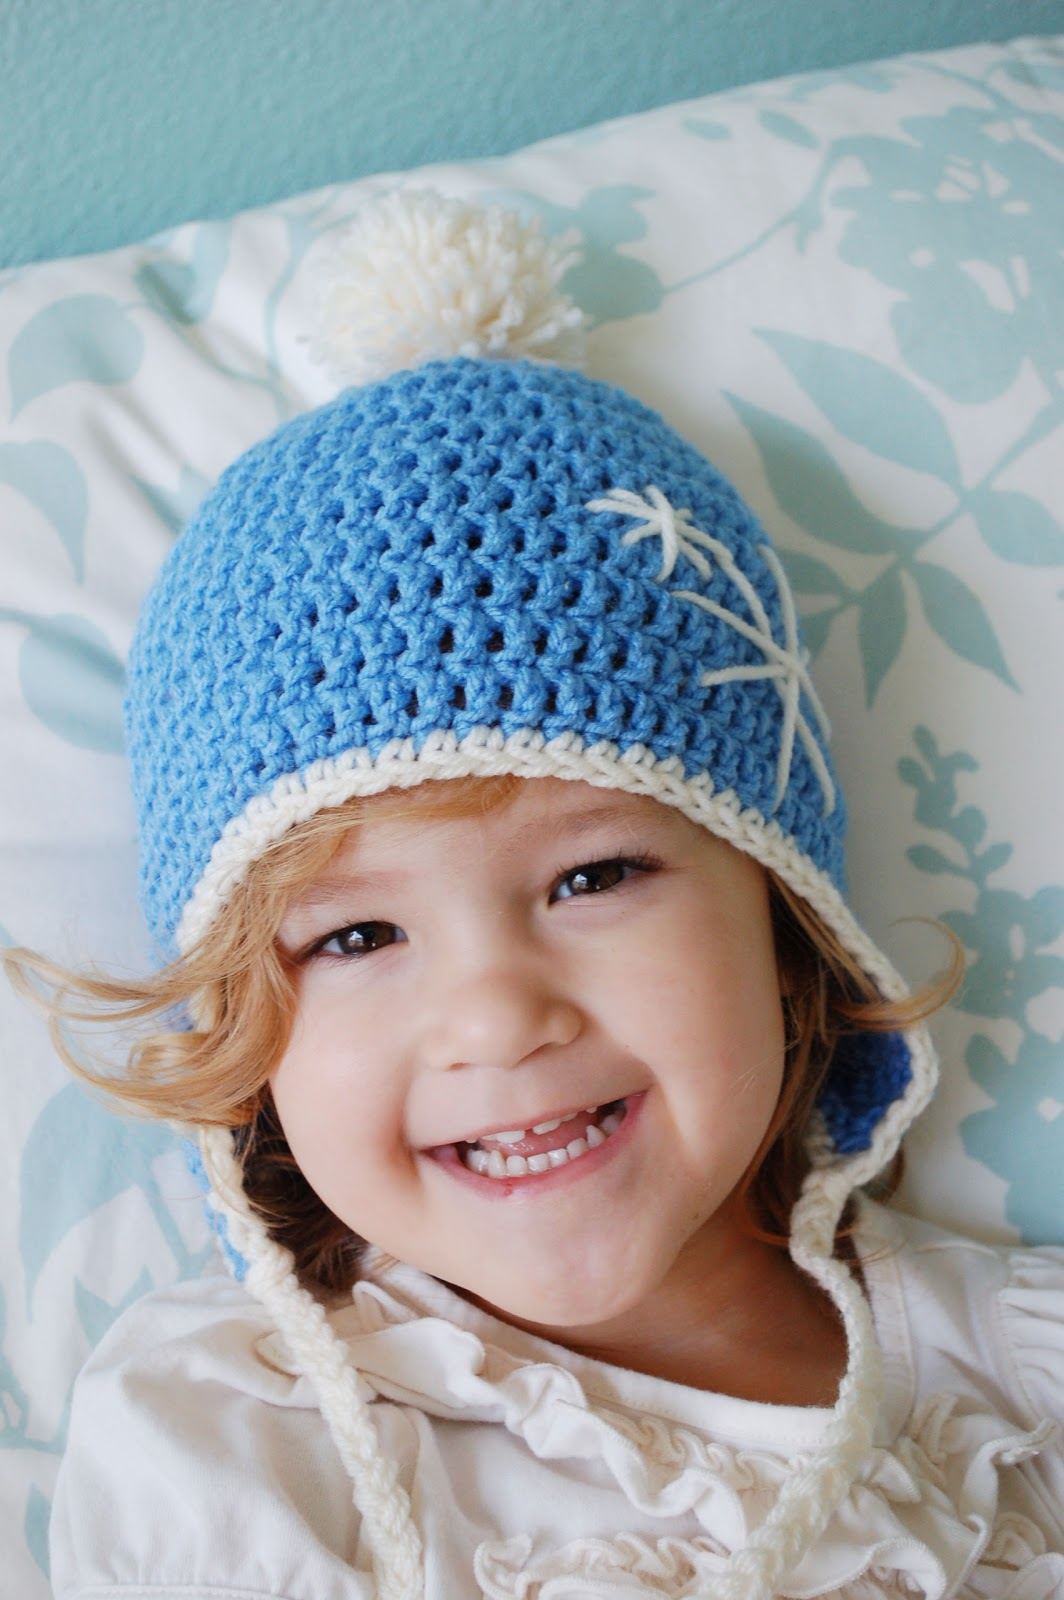 Free Knitting Patterns For Toddler Earflap Hats : Alli Crafts: Free Pattern: Earflap Hat - Toddler